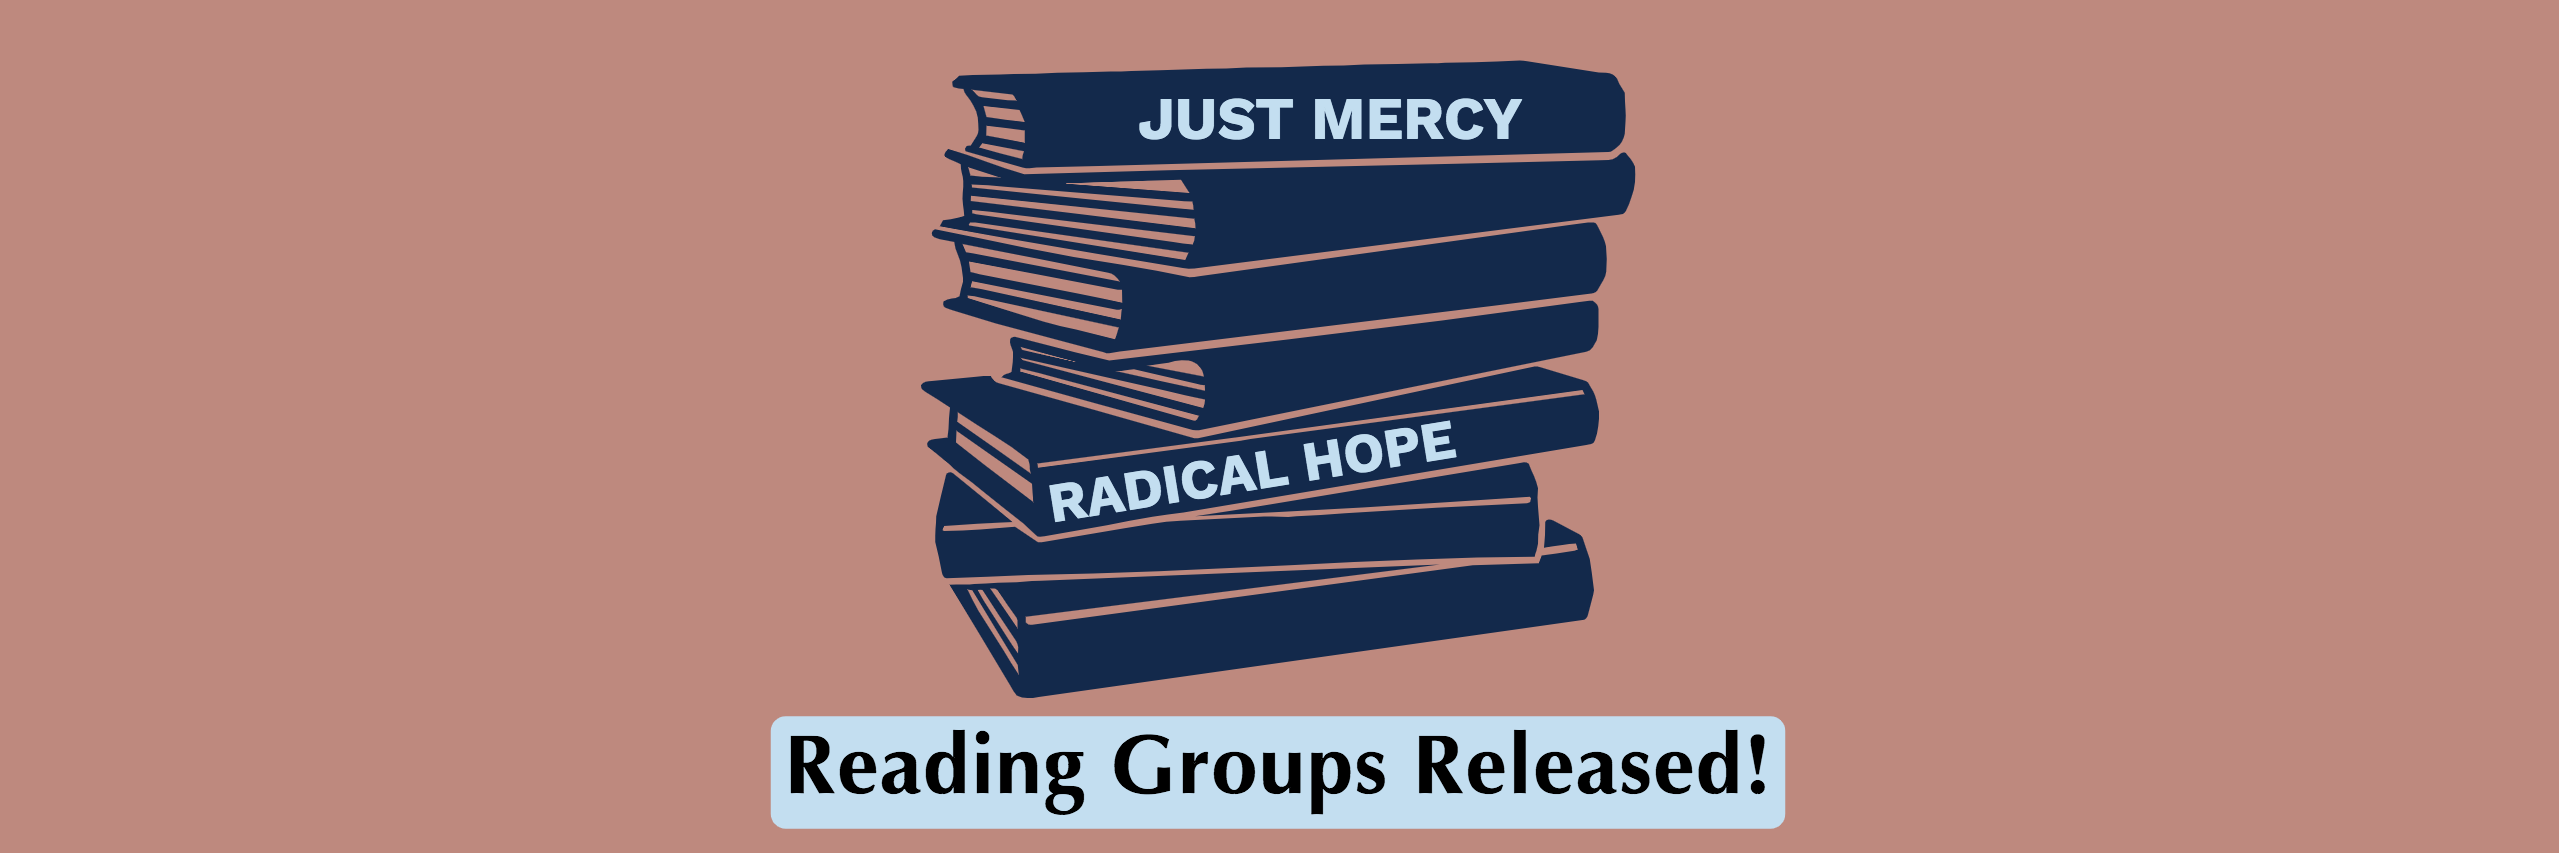 Reading group promotional image.